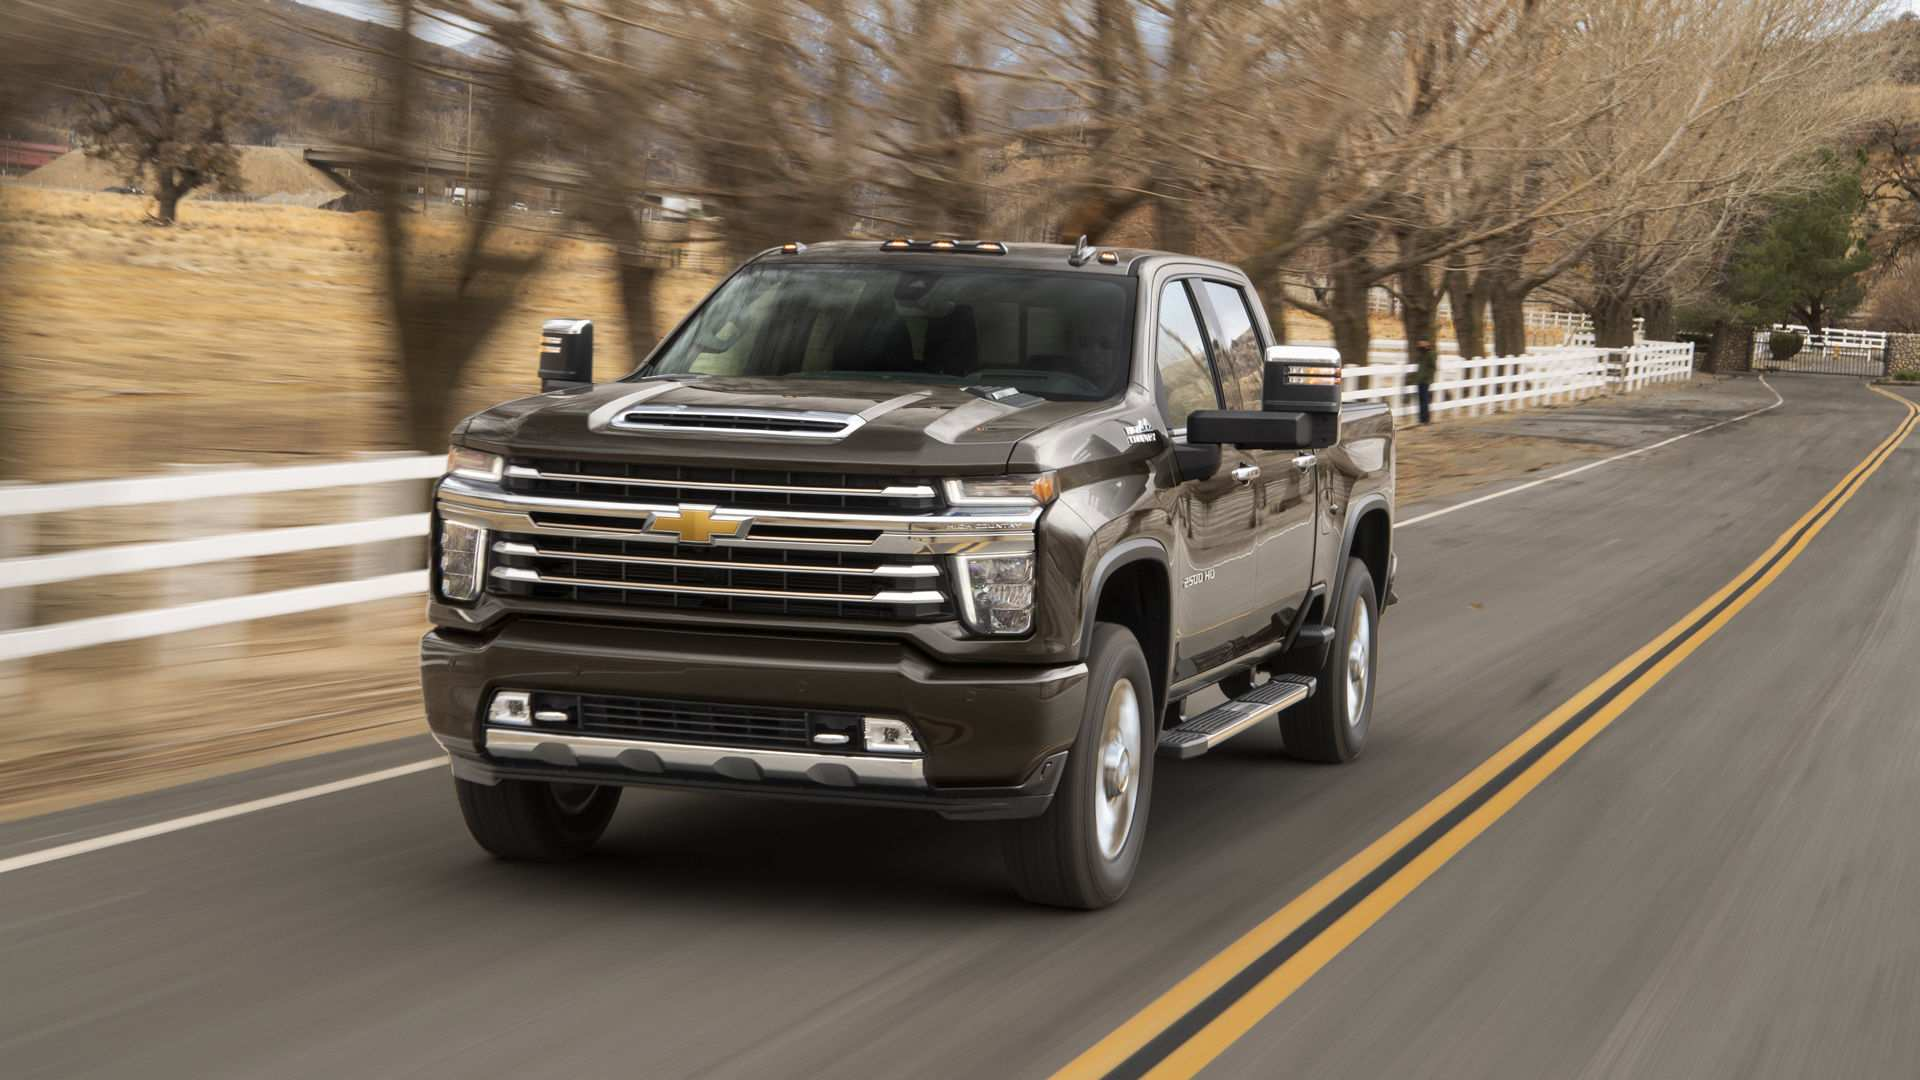 20 Gallery of 2020 Chevrolet 3500 For Sale Interior for 2020 Chevrolet 3500 For Sale